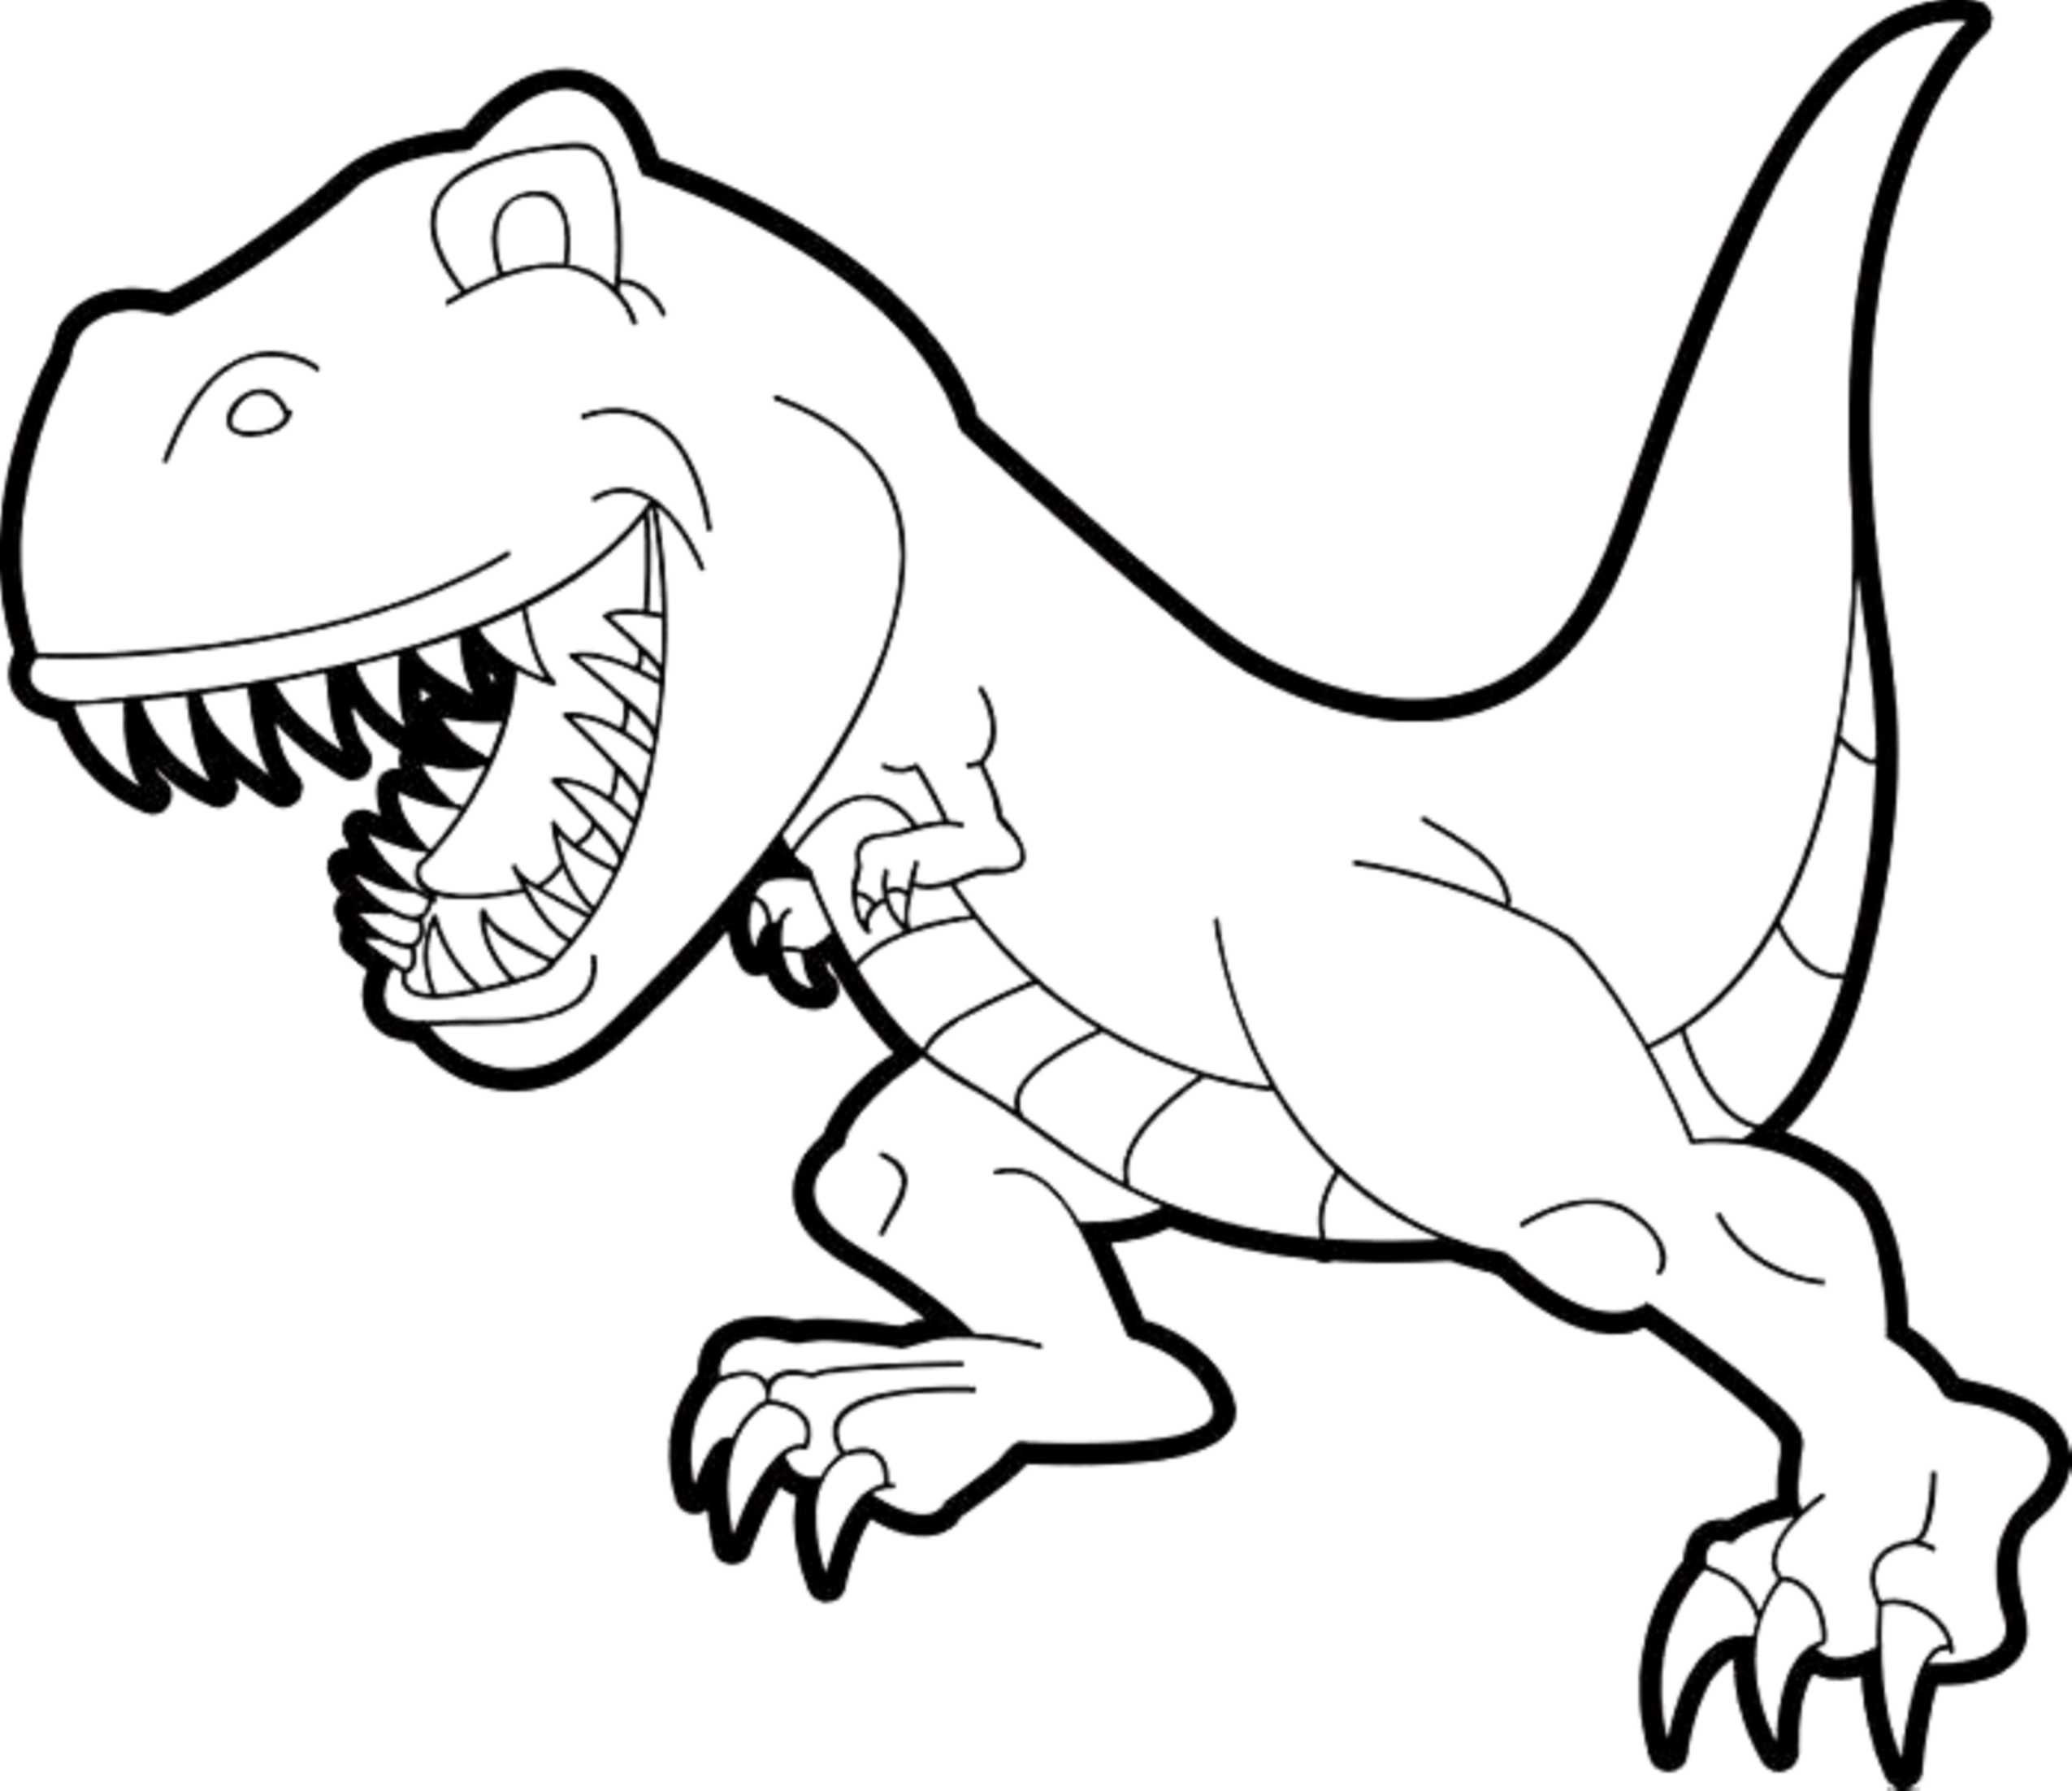 T Coloring Pages For Kids  Insider Scary Dinosaur Coloring Pages Simple T Rex Kids